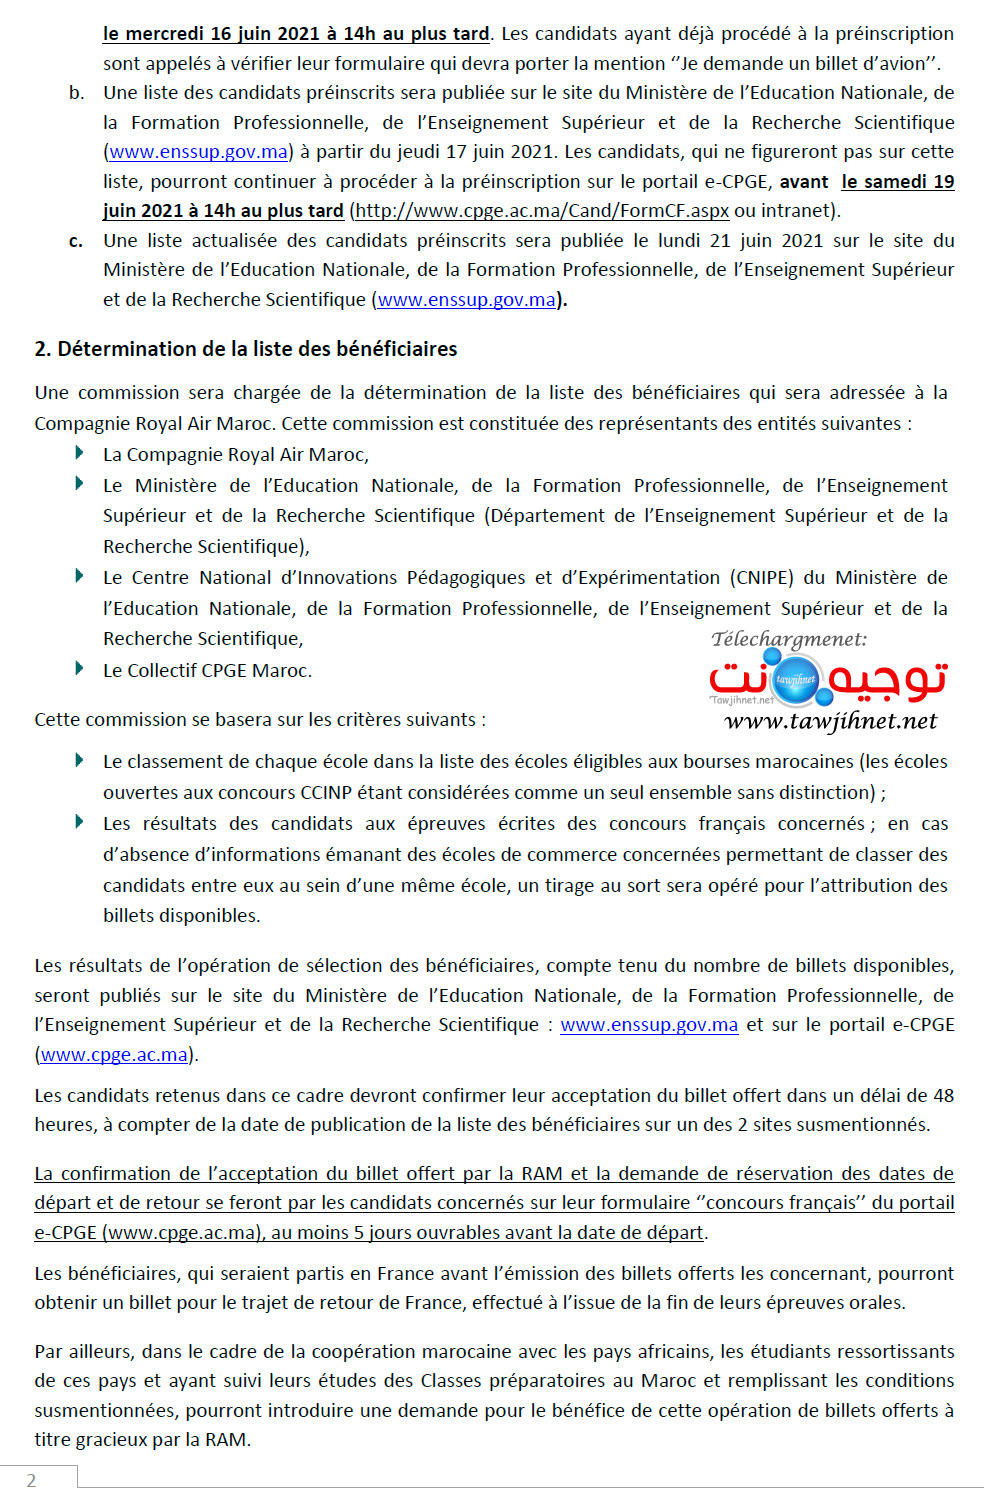 CPGE-Appel-Candidature-Billet-RAM-2021_Page_2.jpg